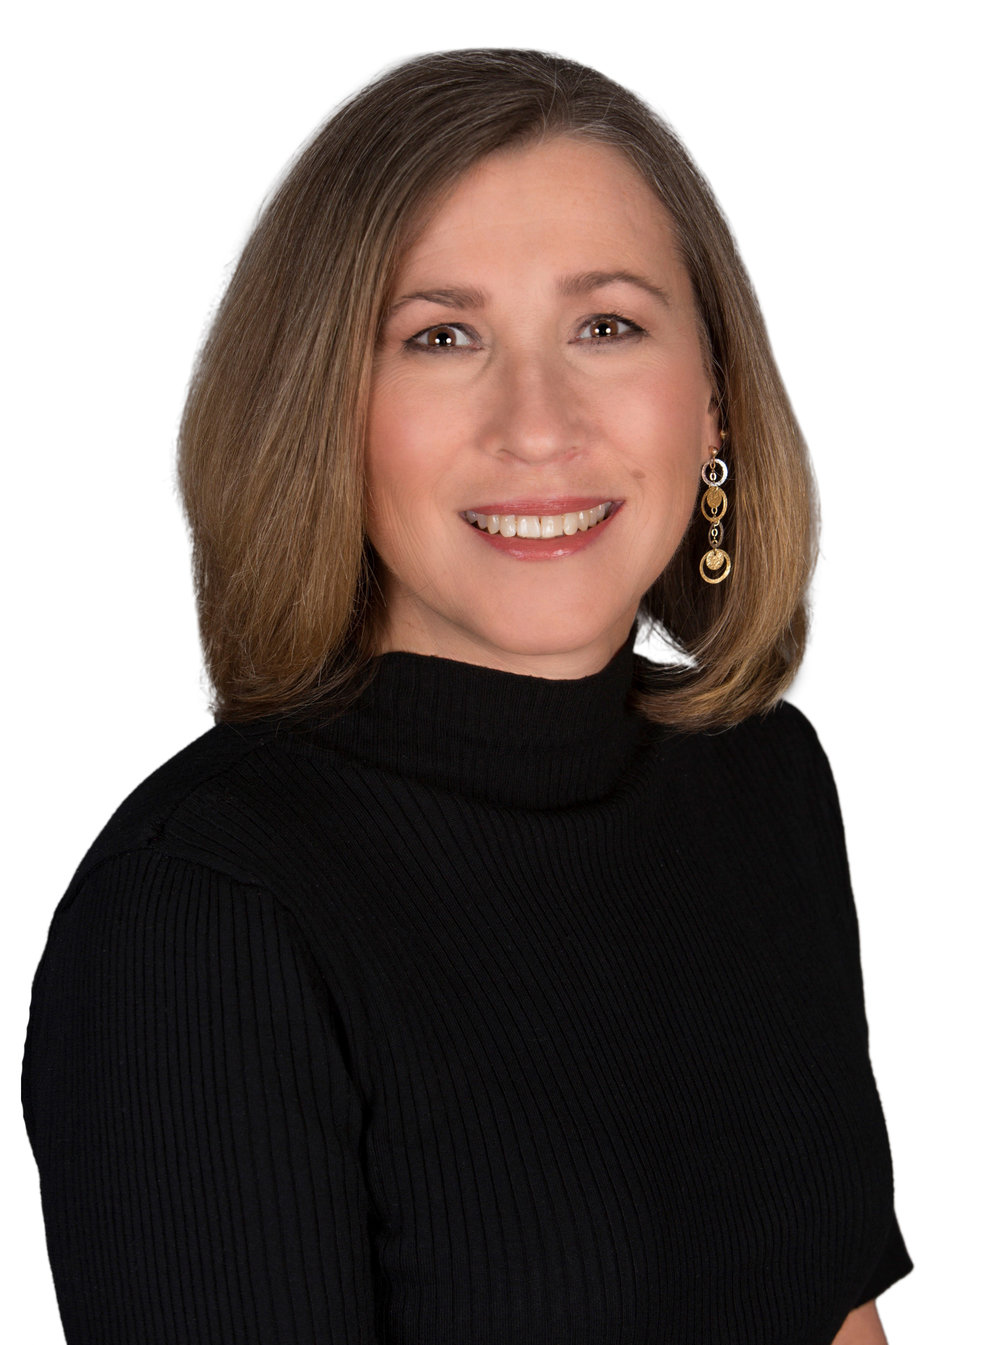 MICHELE BENSON - Michele Benson is the Director of Training for William Pitt Julia B. Fee Sotheby's International Realty. Michele serves as our main conduit to educating our sales professionals on all our tools, technology, and brand offerings. Her responsibilities include direct one-on-one support for agent educational needs, creating and delivering web-based trainings, and overseeing the company's online learning platform that has over 140 a la carte classes.Most notably, Michele served as a trainer for SmartMLS in Connecticut for over 10 years, one of the 20 largest MLSs in the nation representing over 17,000 real estate professionals throughout the state. She has also worked with buyers and sellers as a real estate agent in the Shoreline region.In her free time she is a wake-boarding and snowboarding instructor, or can also be found at the beach in her hometown of Madison on her stand-up paddleboard.